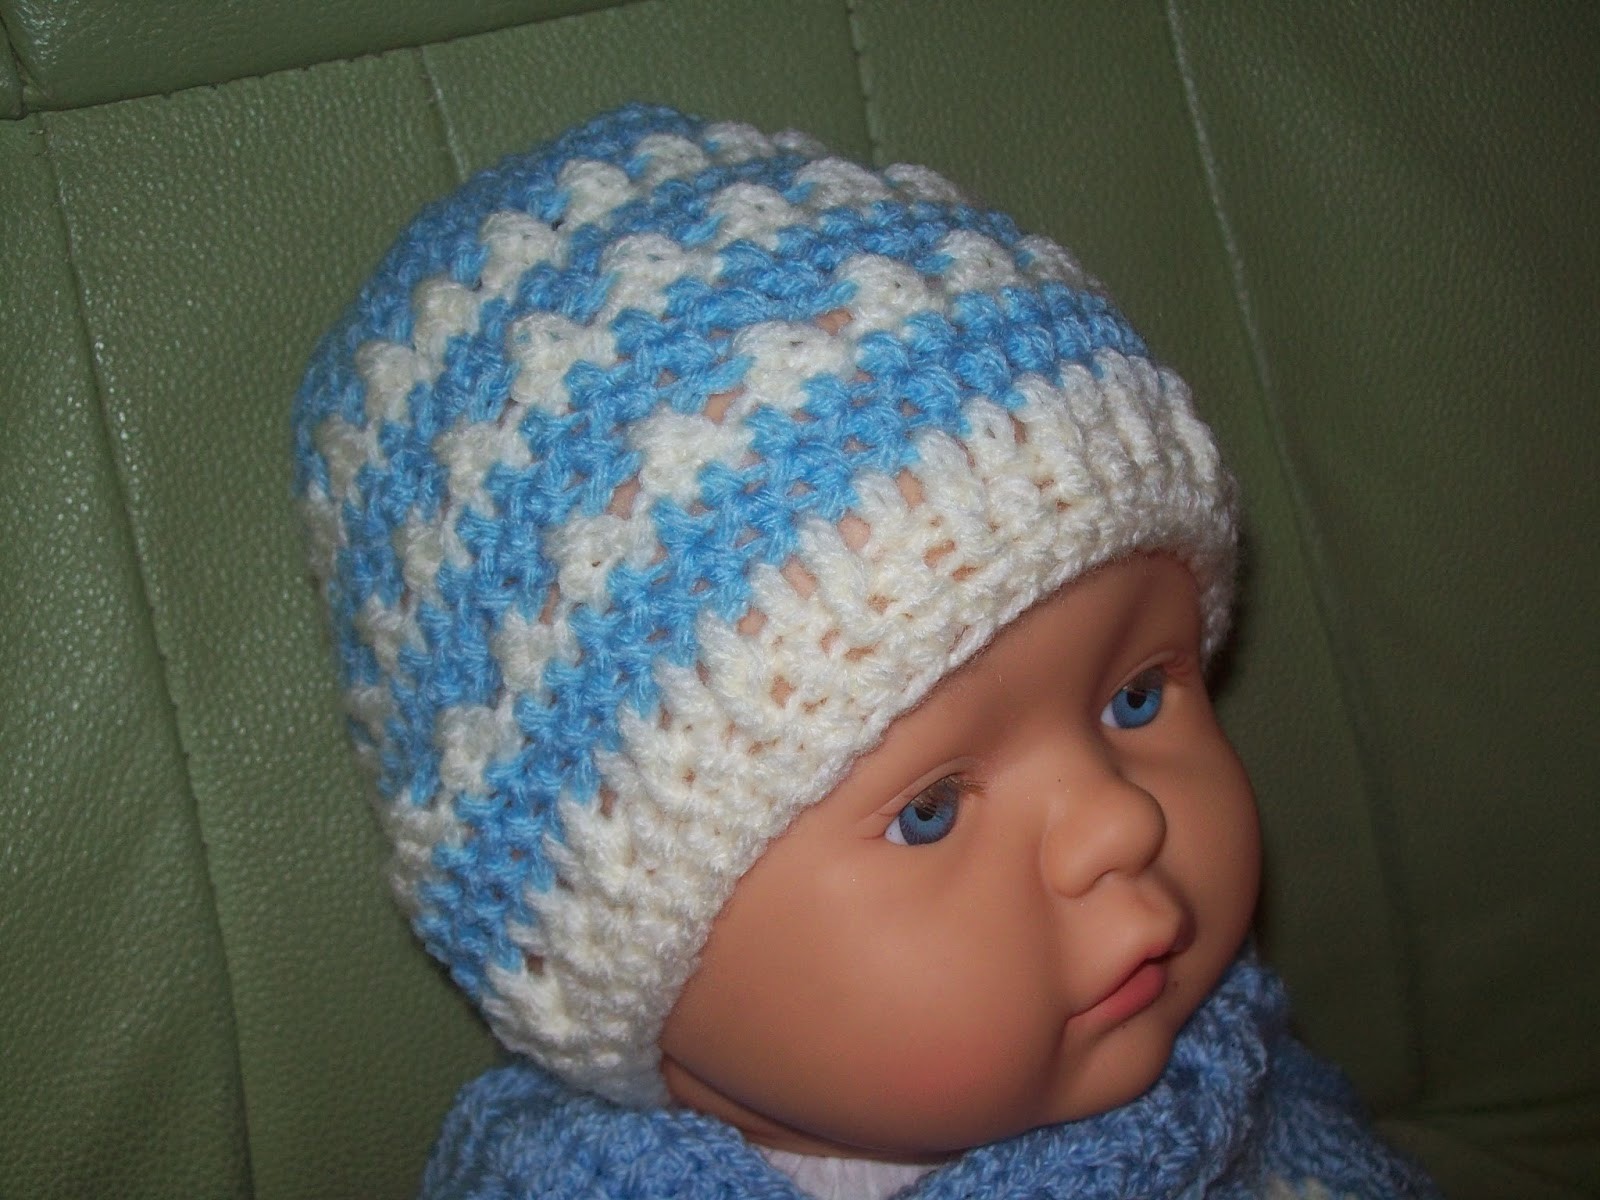 Unique Free Crochet Patterns by Cats Rockin Crochet Free Crochet Infant Hat Patterns Of Luxury Baby Hat Crochet Pattern Modern Homemakers Free Crochet Infant Hat Patterns